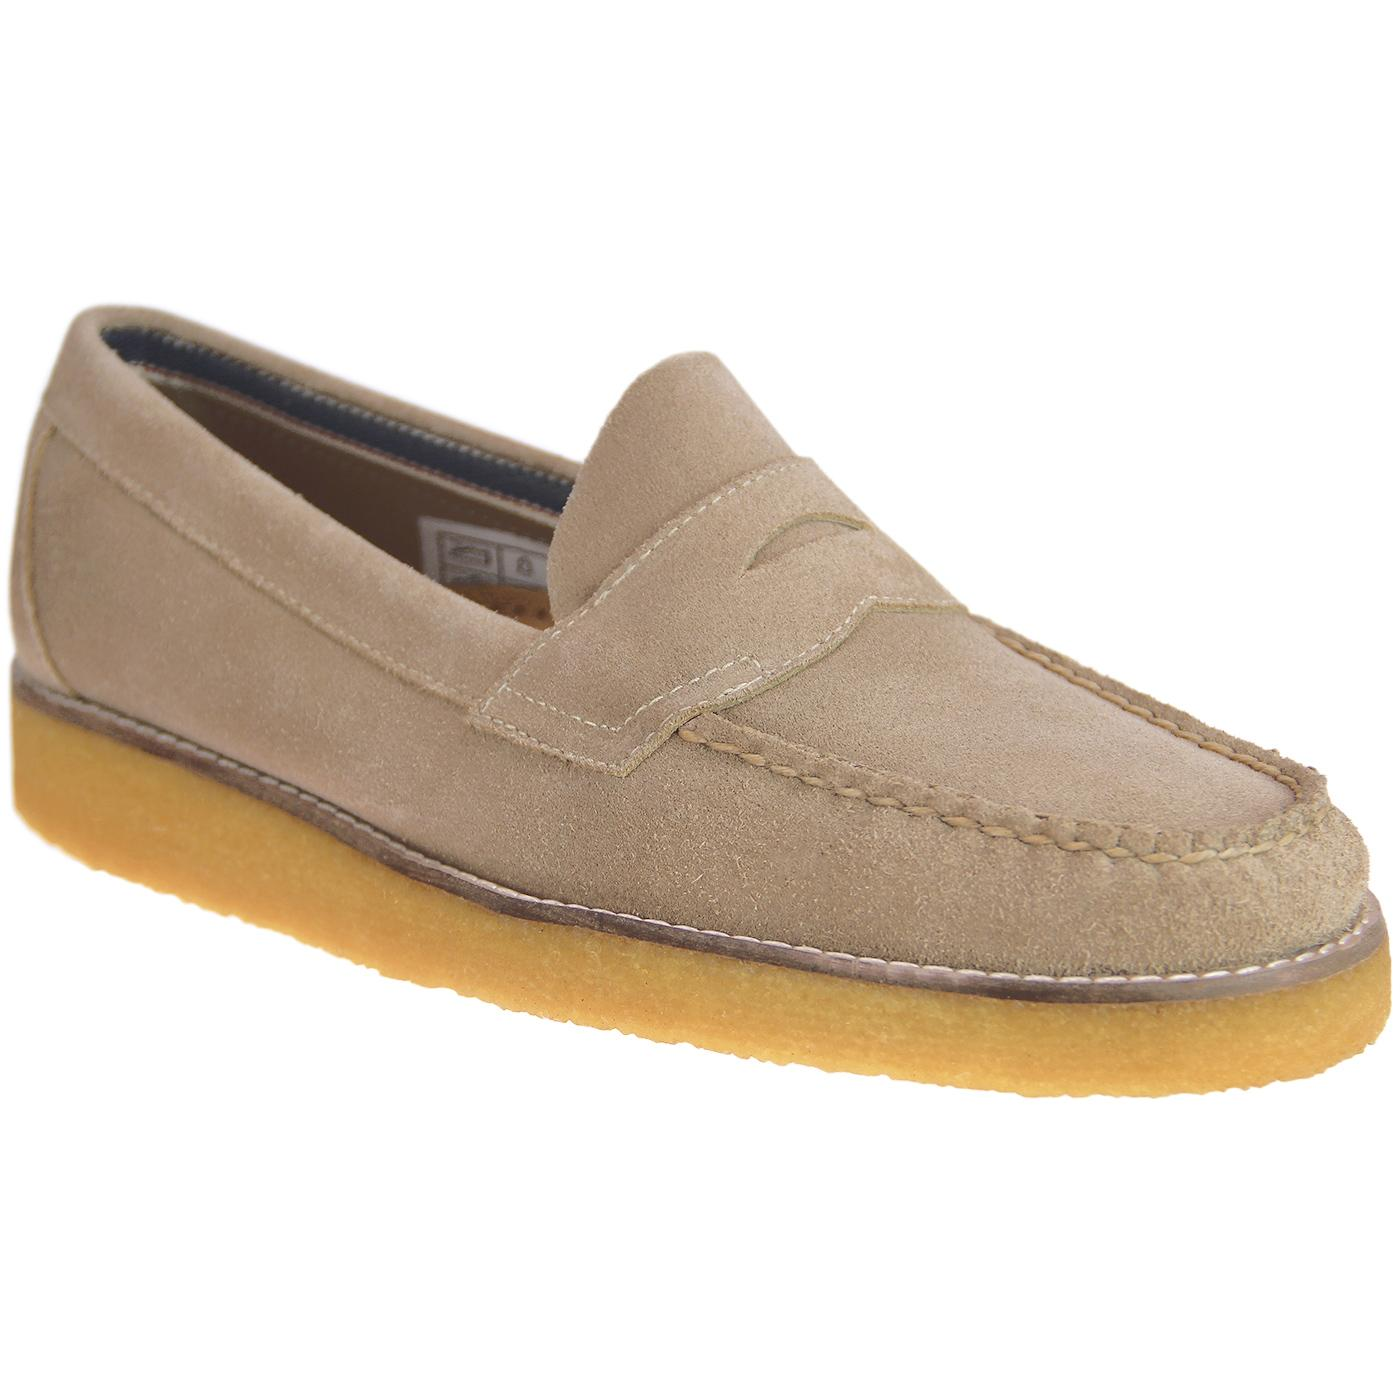 Logan Suede BASS WEEJUN Mod Crepe Penny loafers